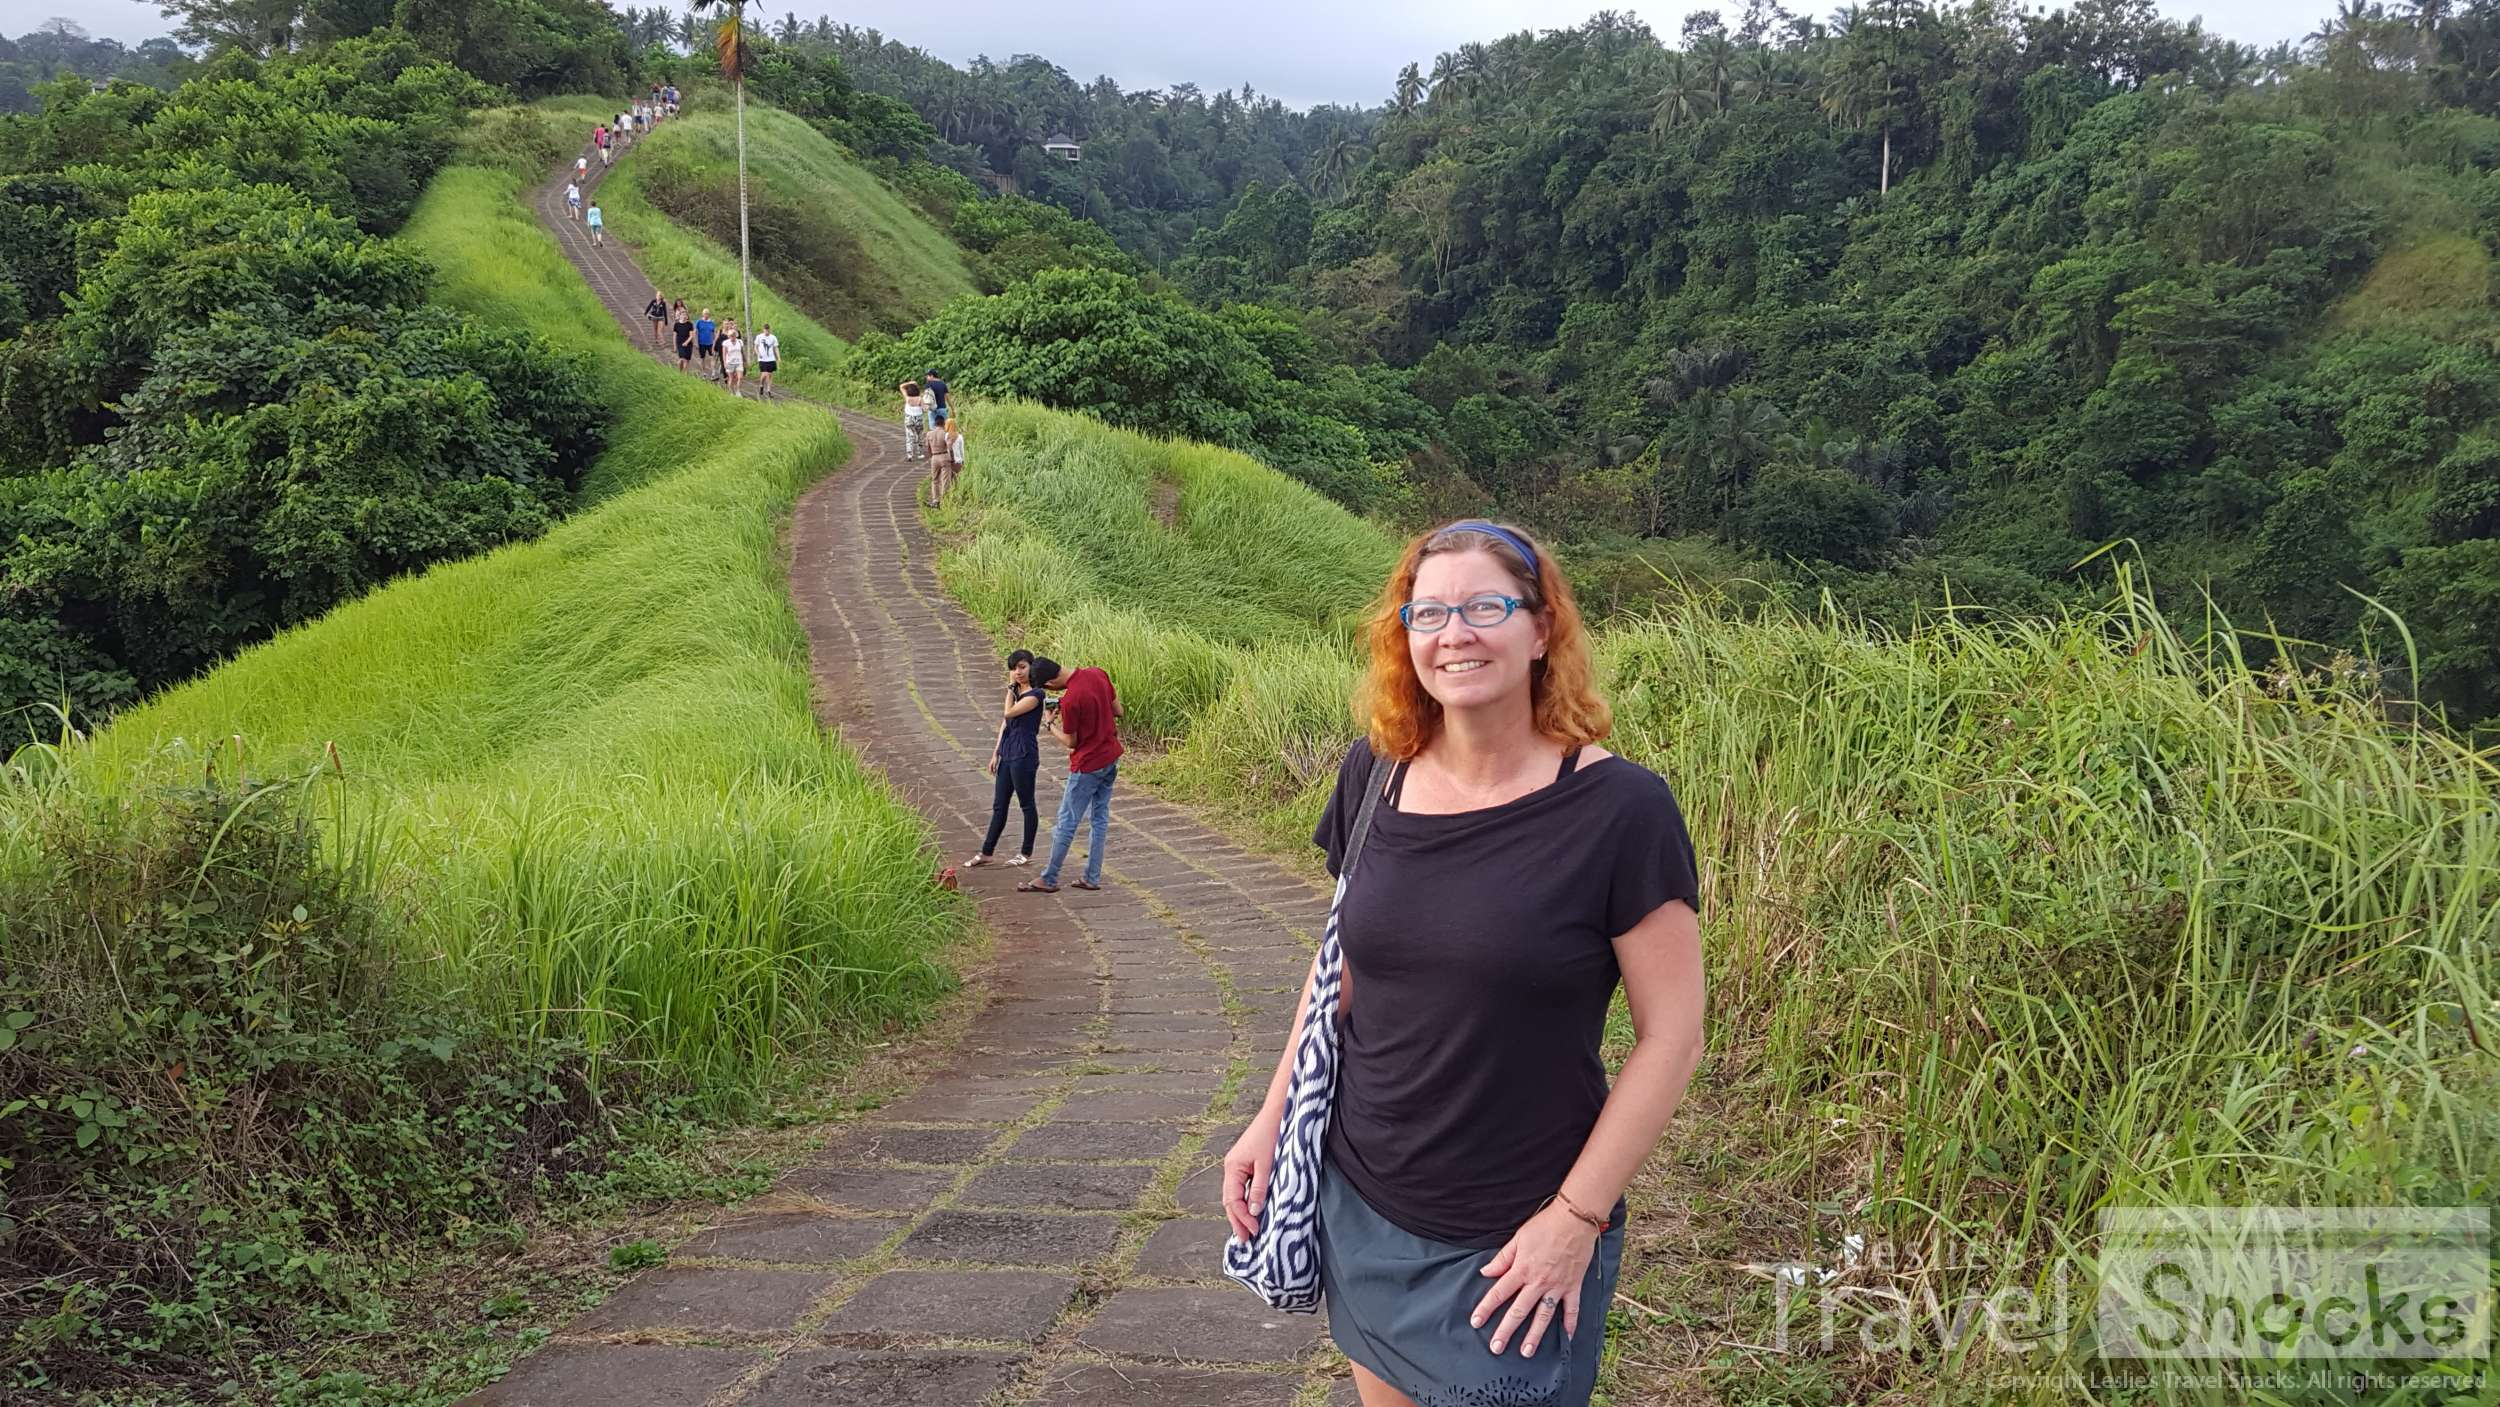 Athleta skort, Royal Robbins Noe top, Patagonia Barely sport bra, ExOfficio Give-n-Go undies, and a Love Bags Stash-It sling made a pretty cute and very functional outfit for this walk in Bali.